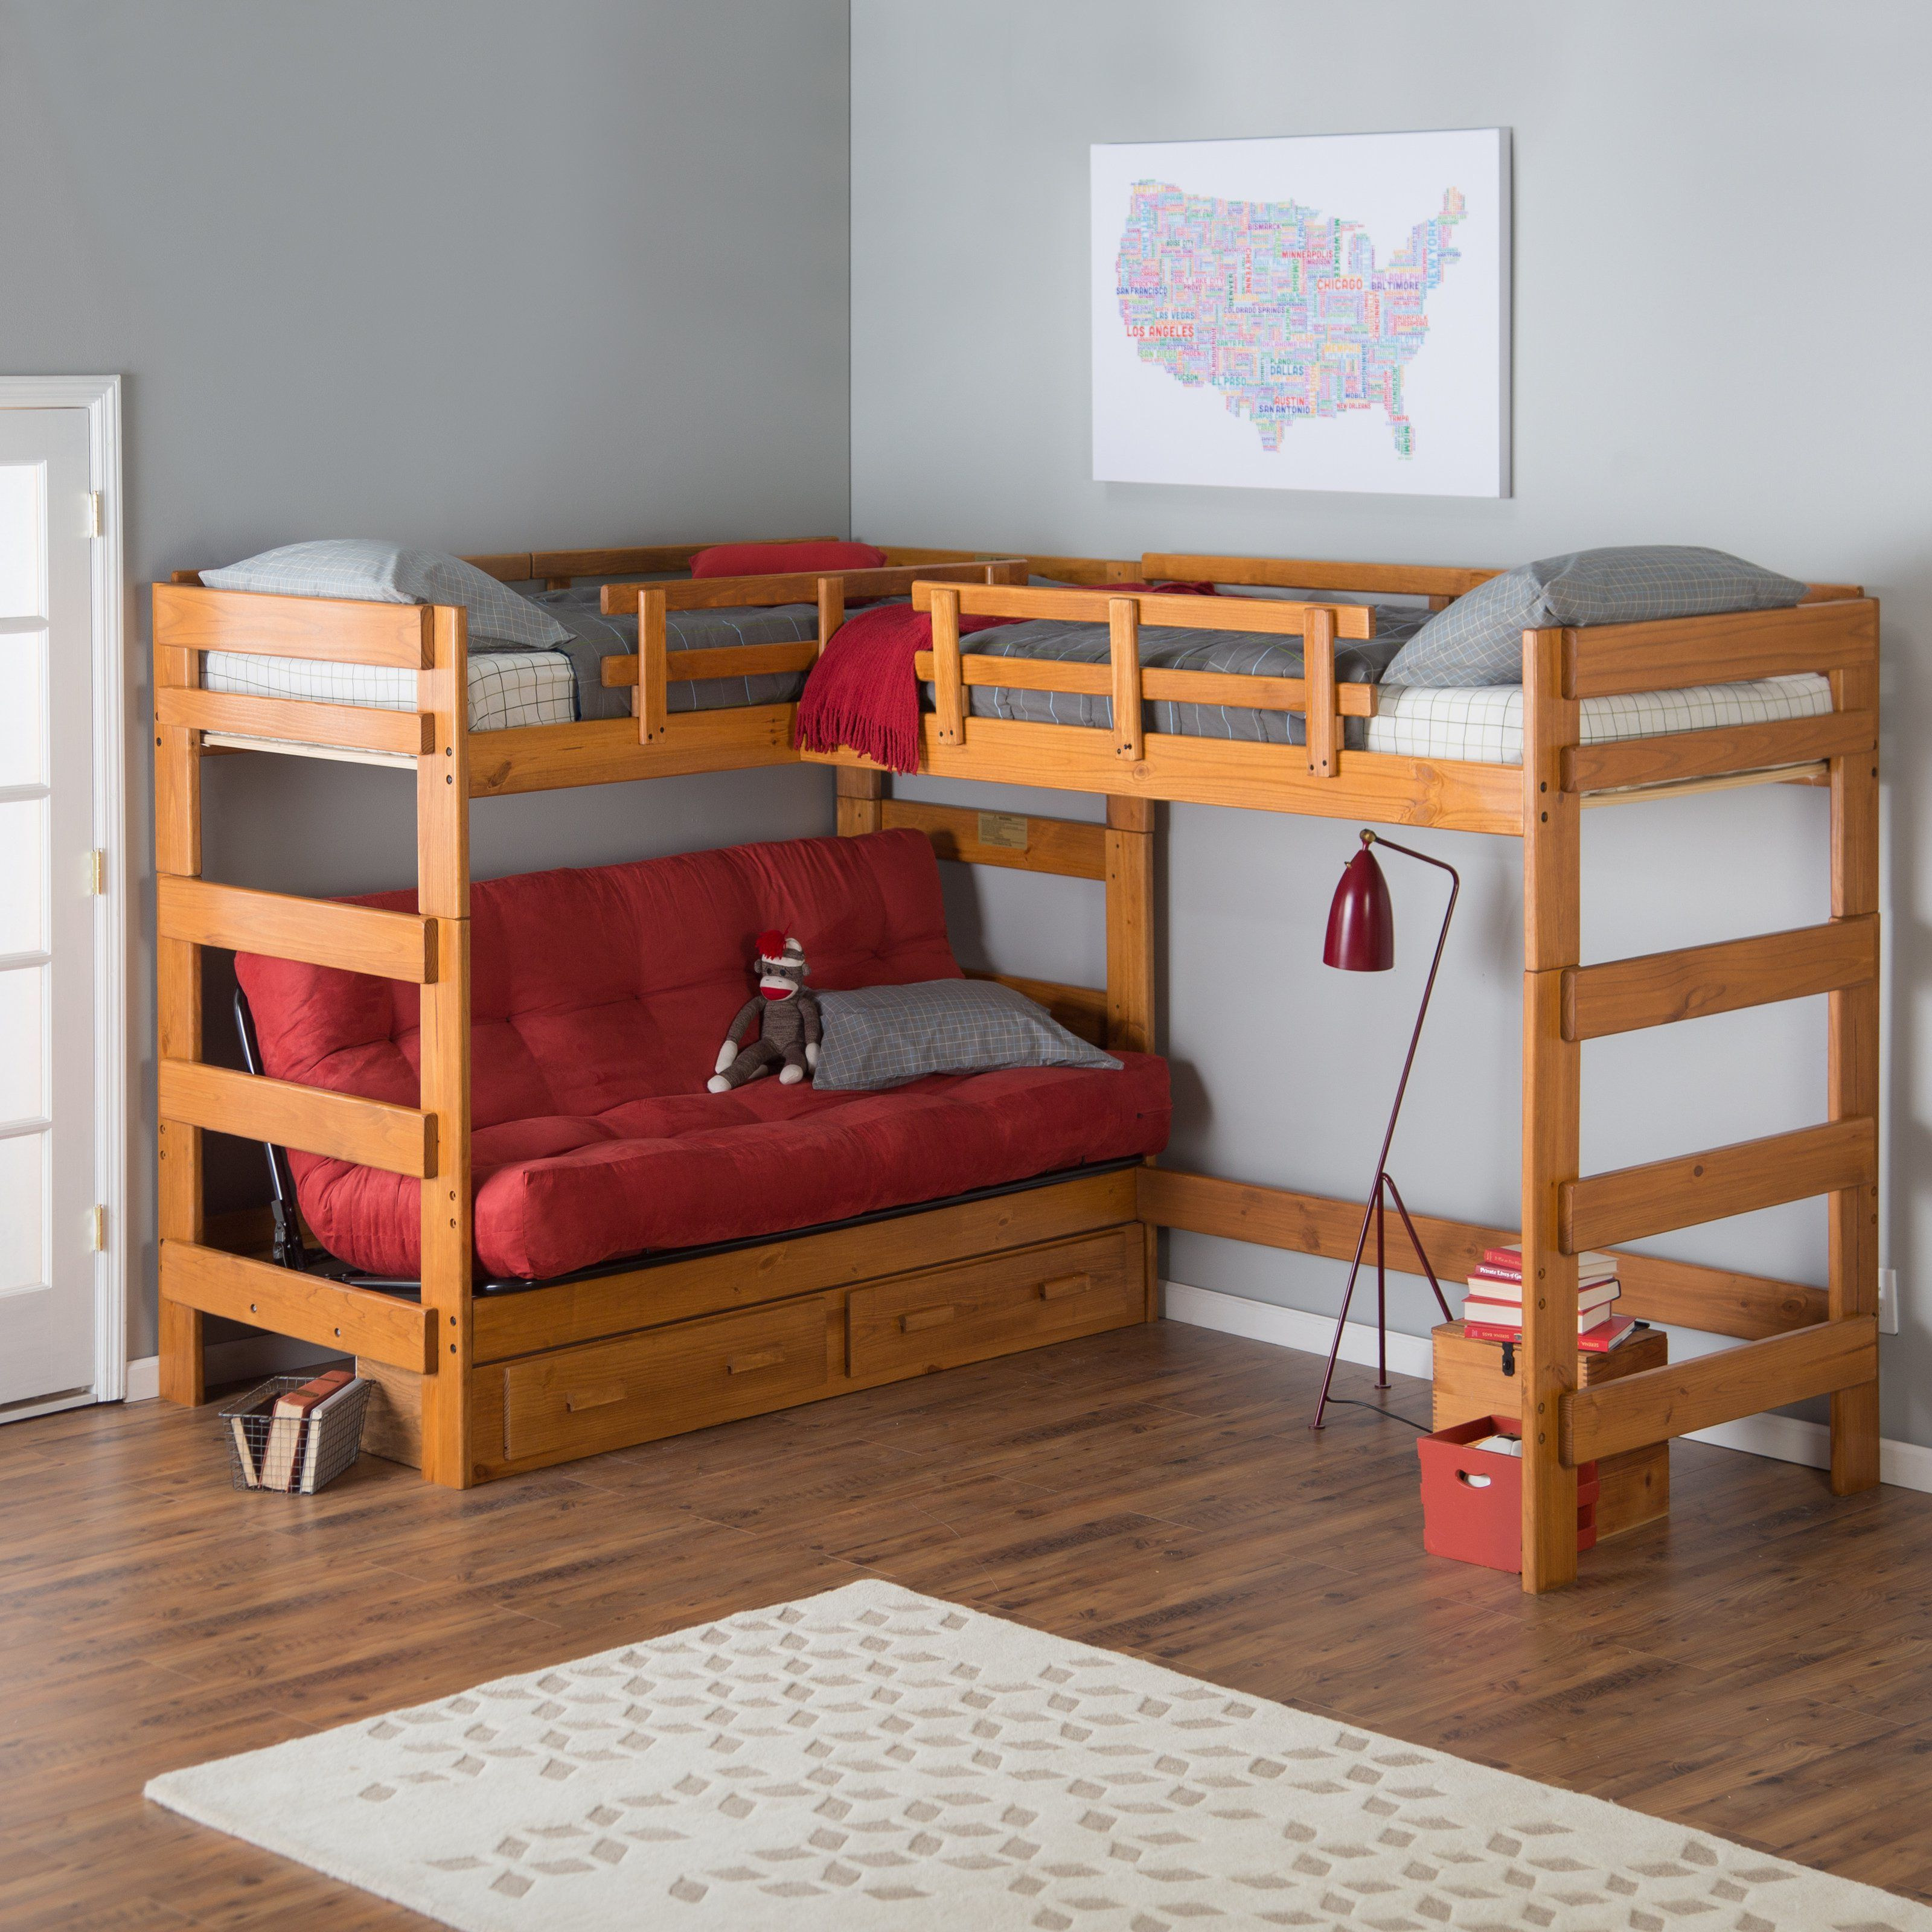 Top Bunks For The Girls Bottom For My Rugged Boy Kids Room